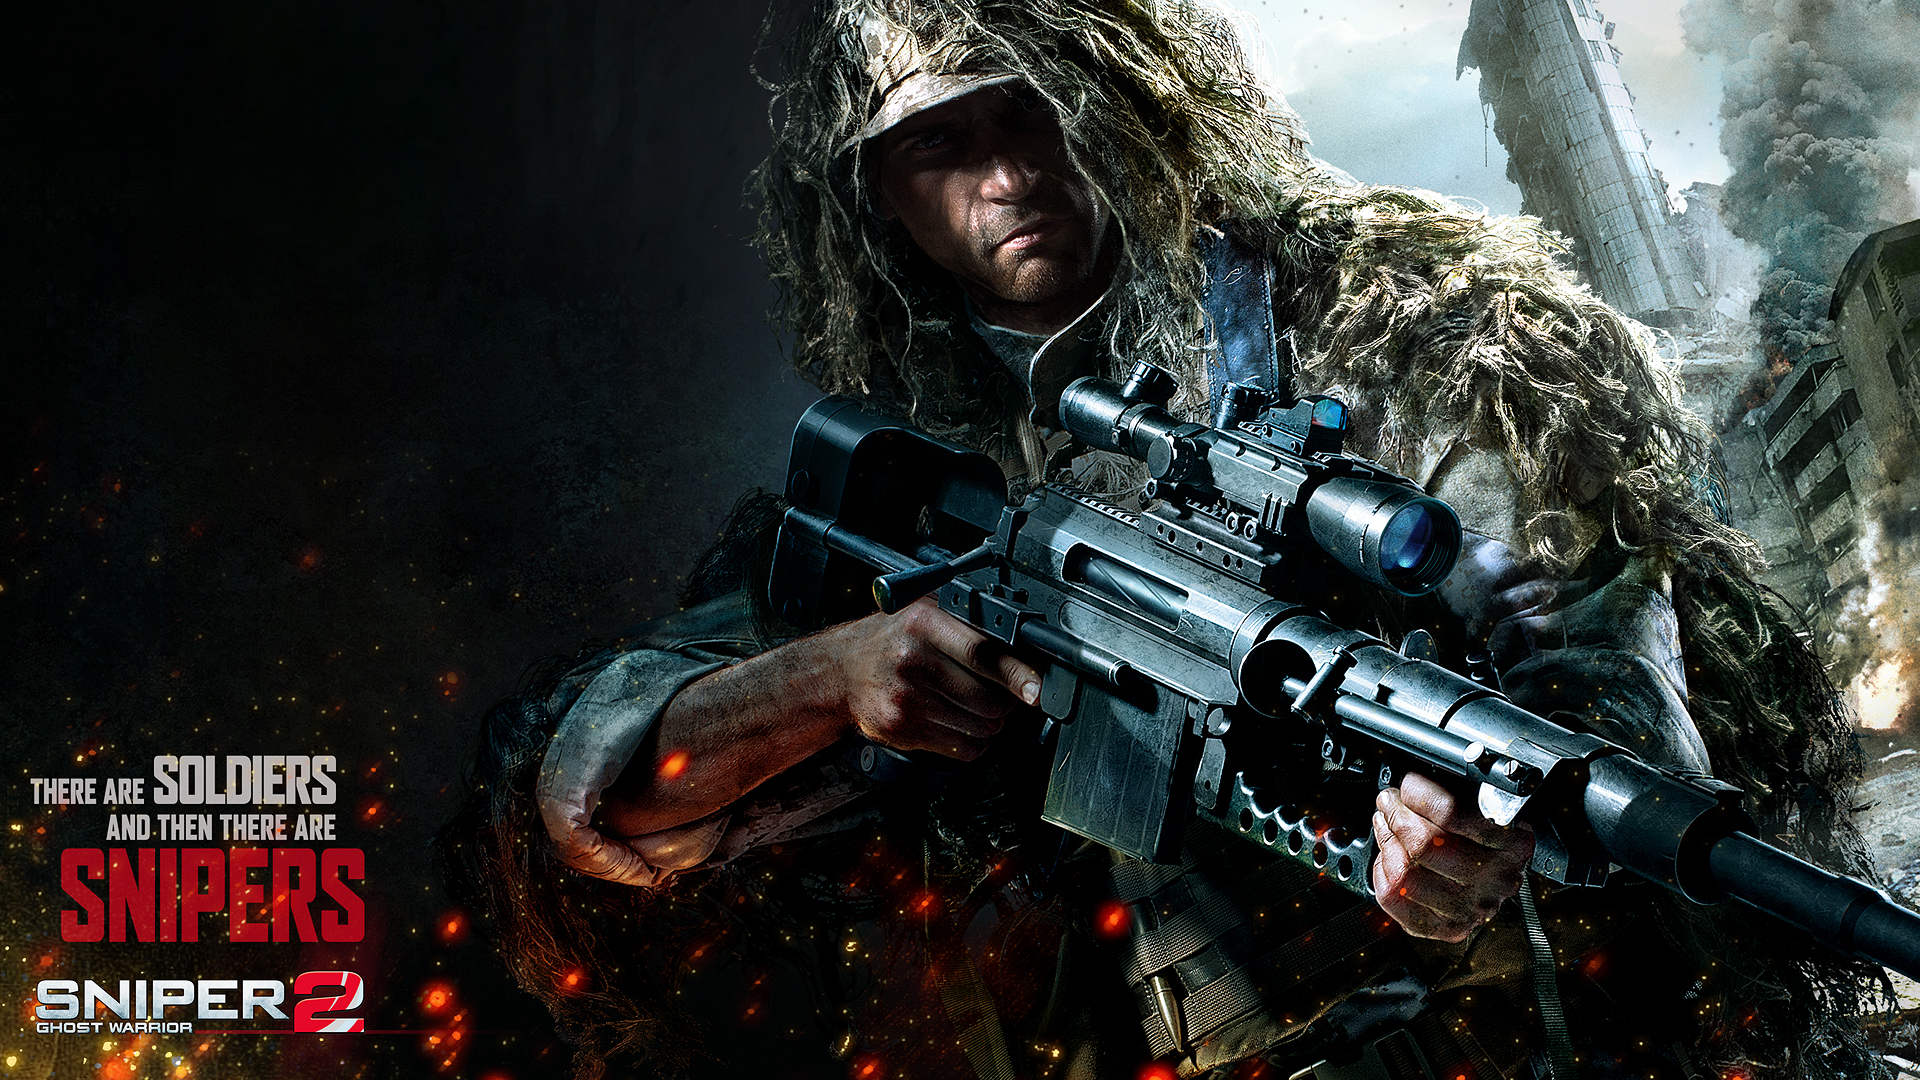 Sniper ghost warrior 2 you are downloading sniper ghost warrior 2